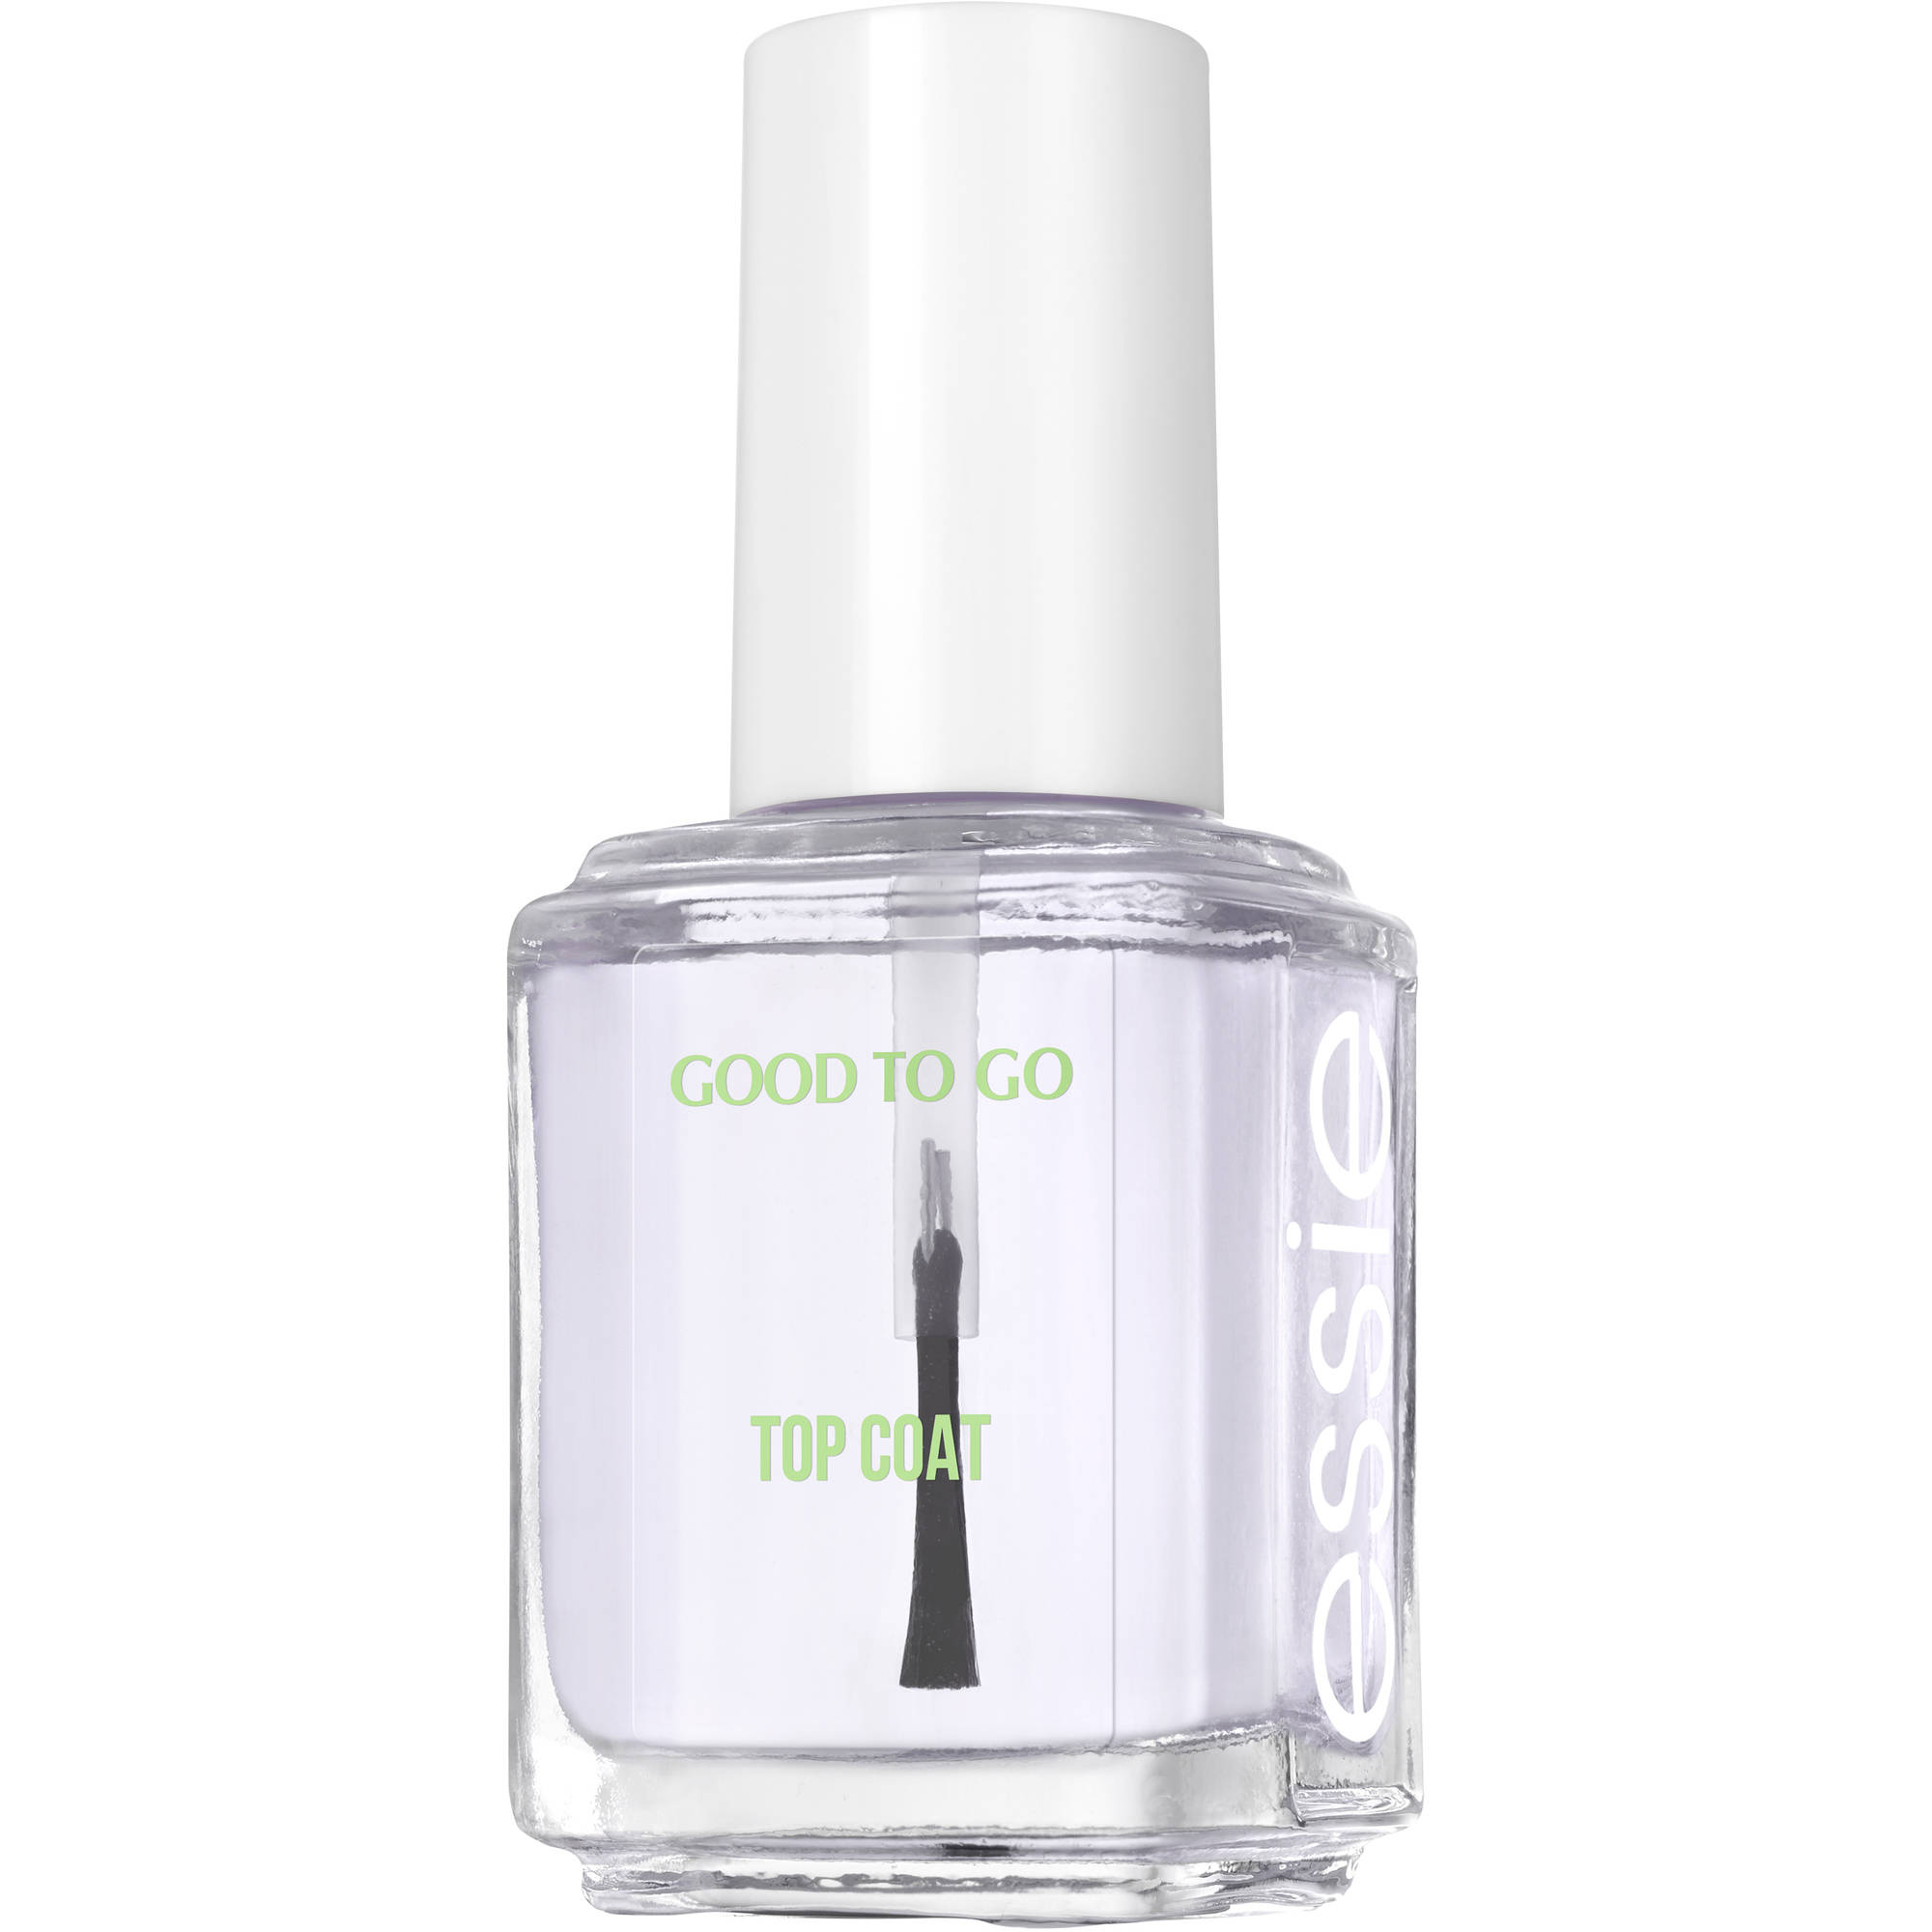 essie good to go top coat - Walmart.com